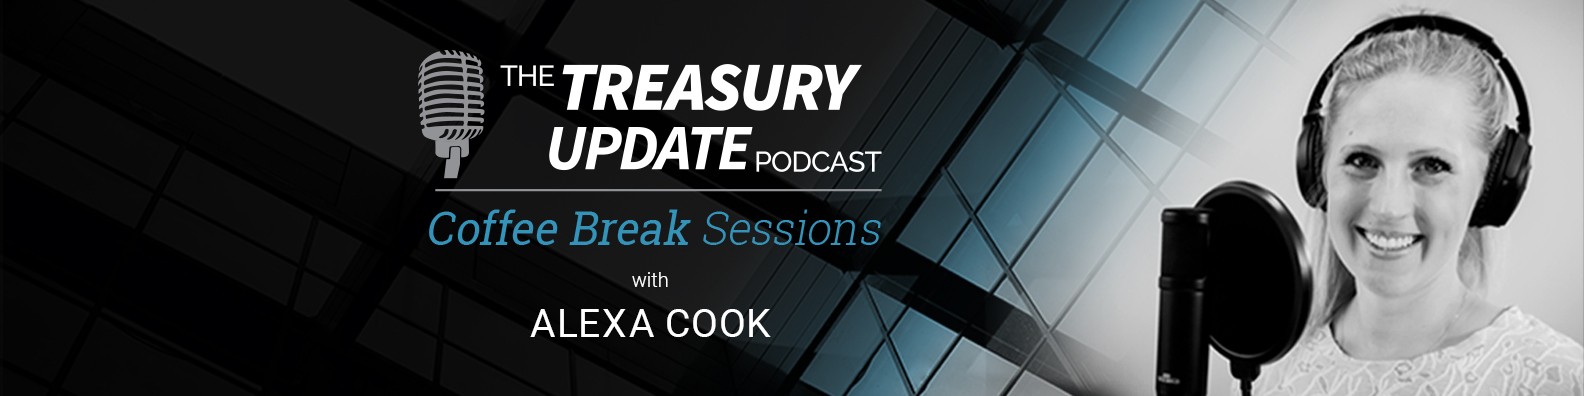 Coffee Break Sessions - Treasury Update Podcast